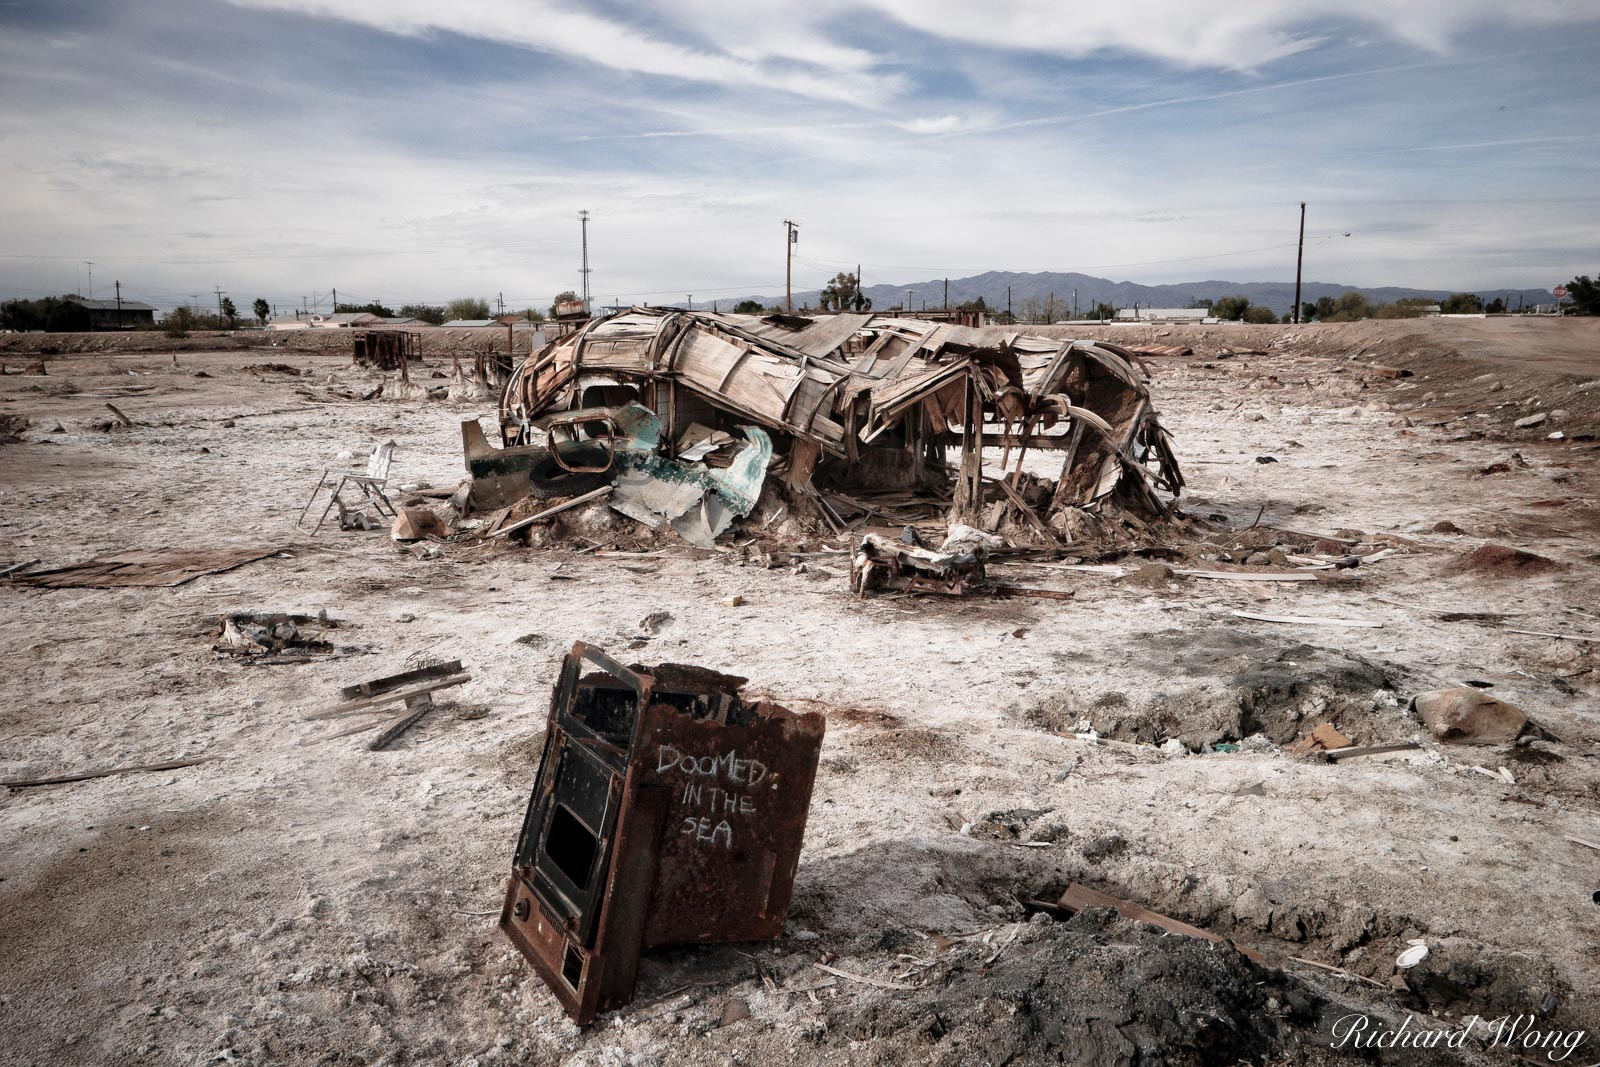 Abandoned RV Trailer Buried in Mud near Salton Sea, Bombay Beach, California, photo, photo